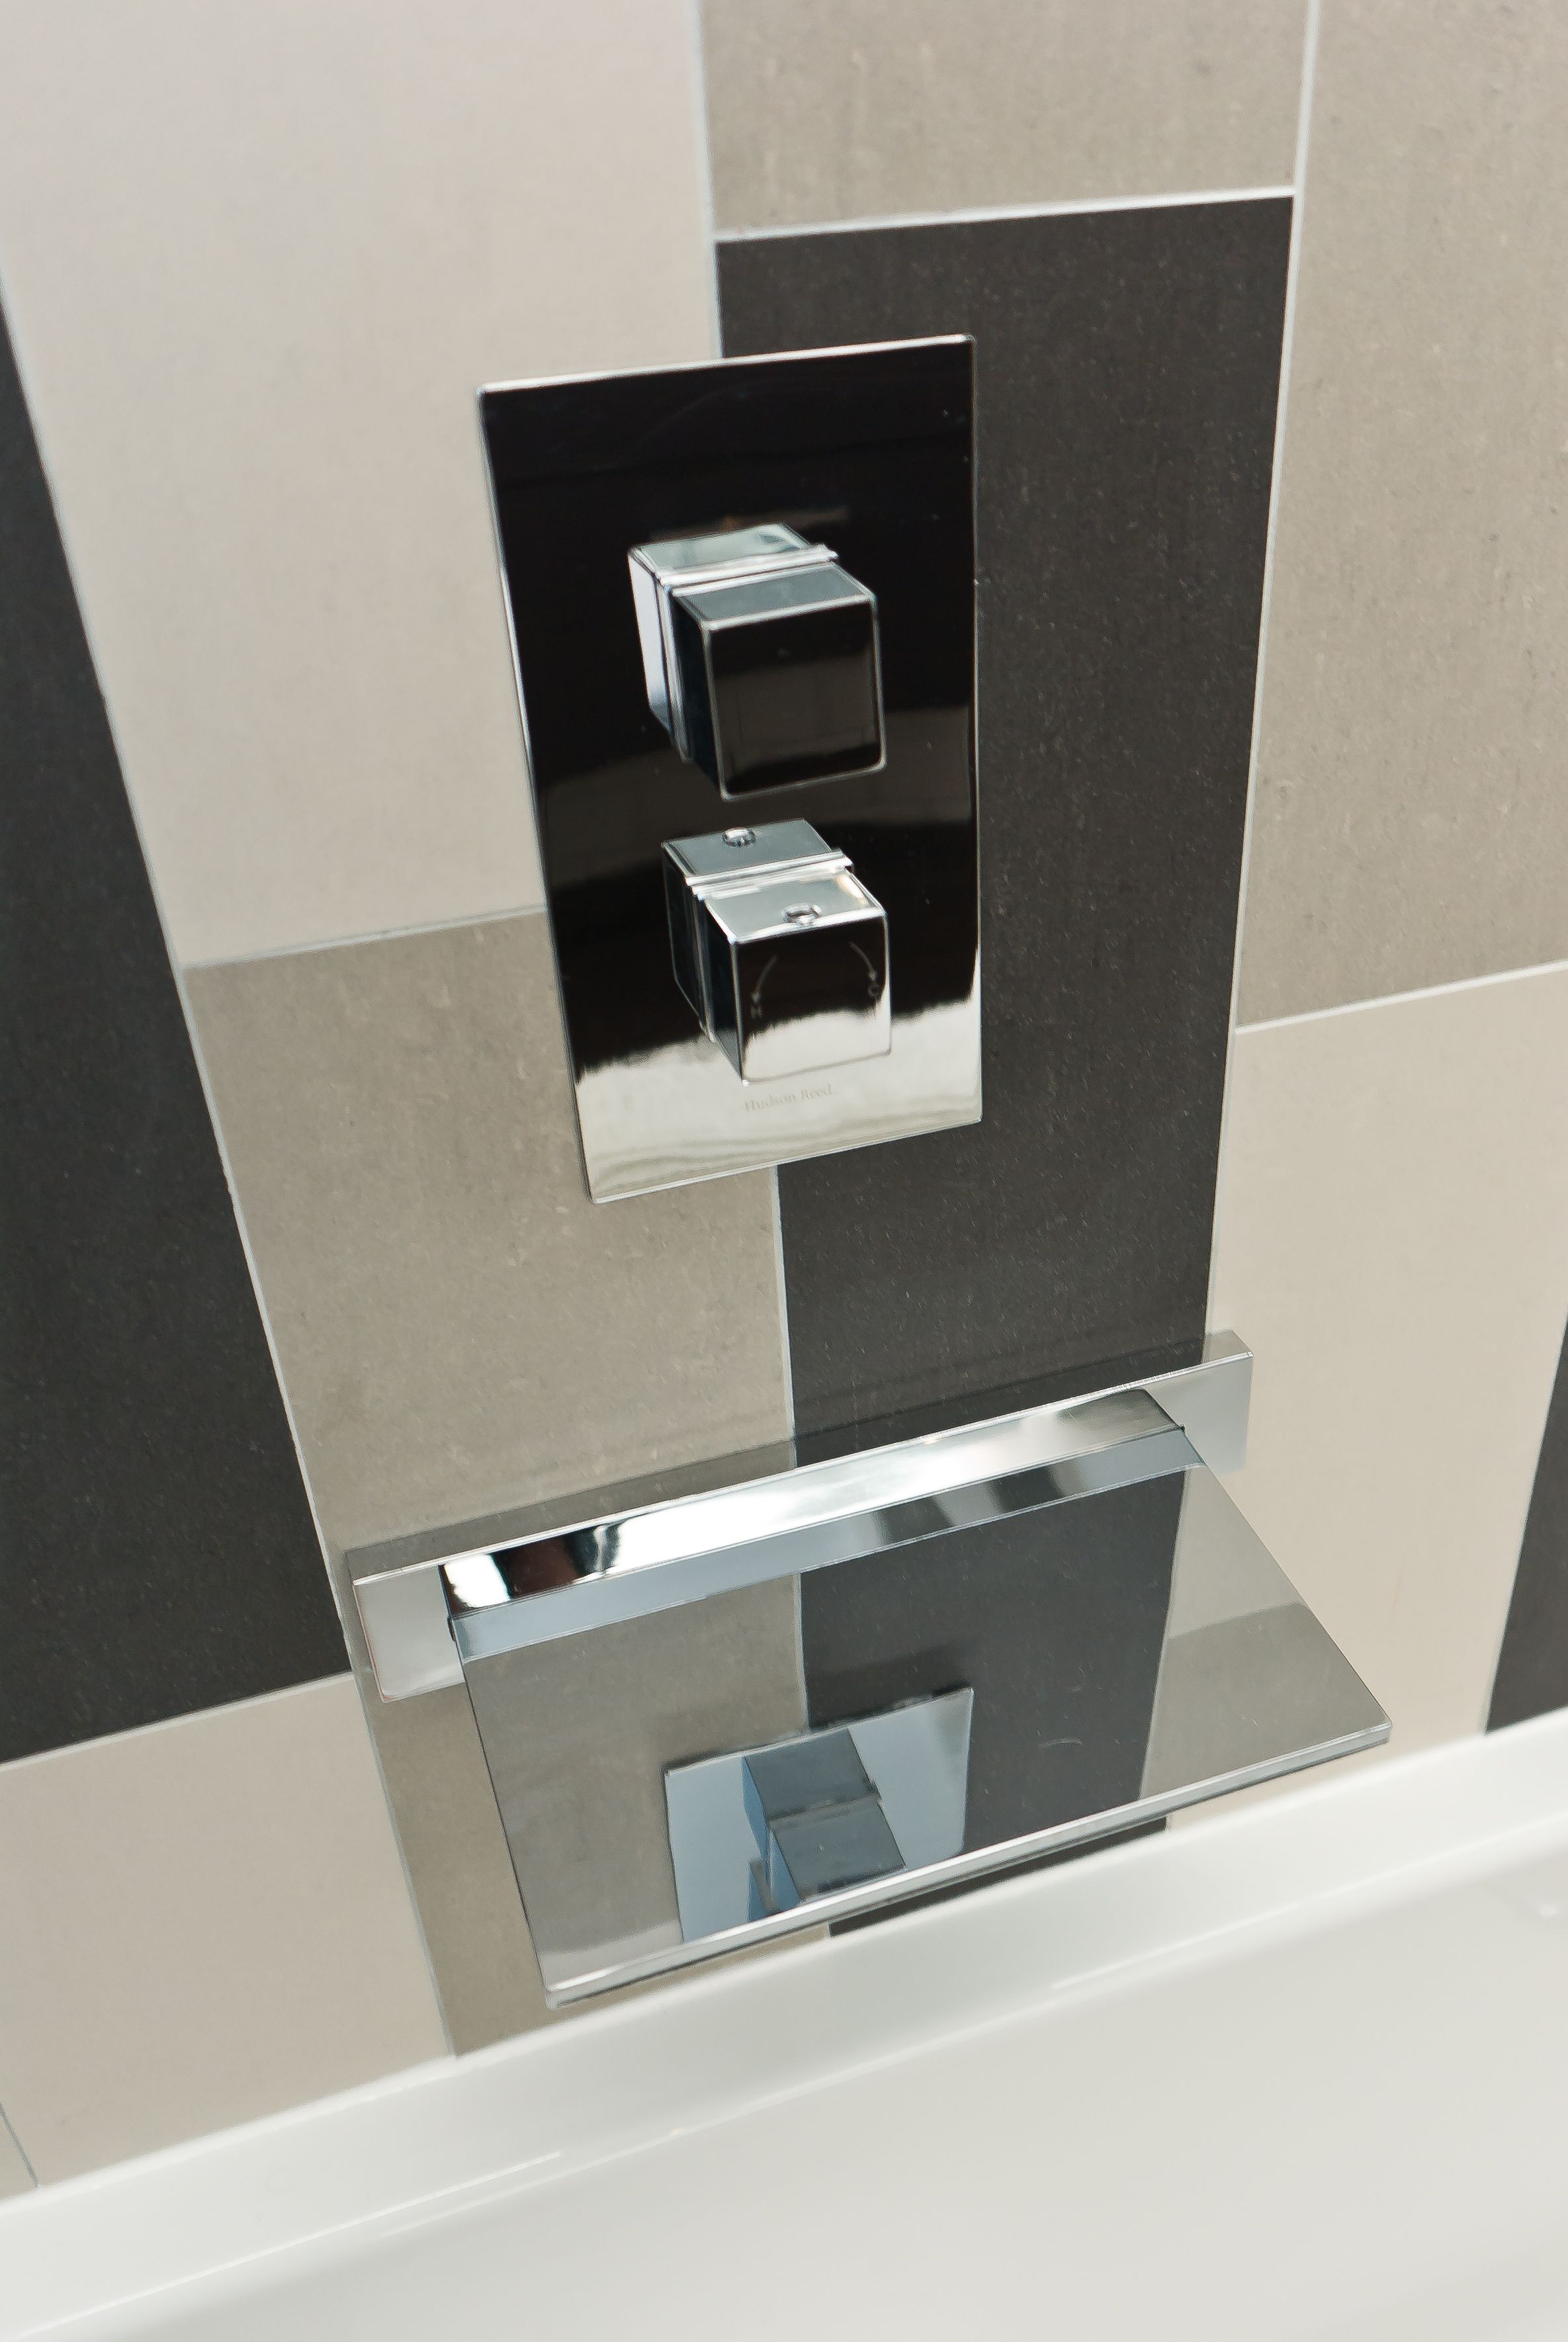 Wall mount tub filler bathroom contemporary with accent wall bathroom - Gray White Black Accent Tile Wall Square Tub Waterfall Tub Filler Black Accentsmodern Bathroomwaterfalltubbathrooms